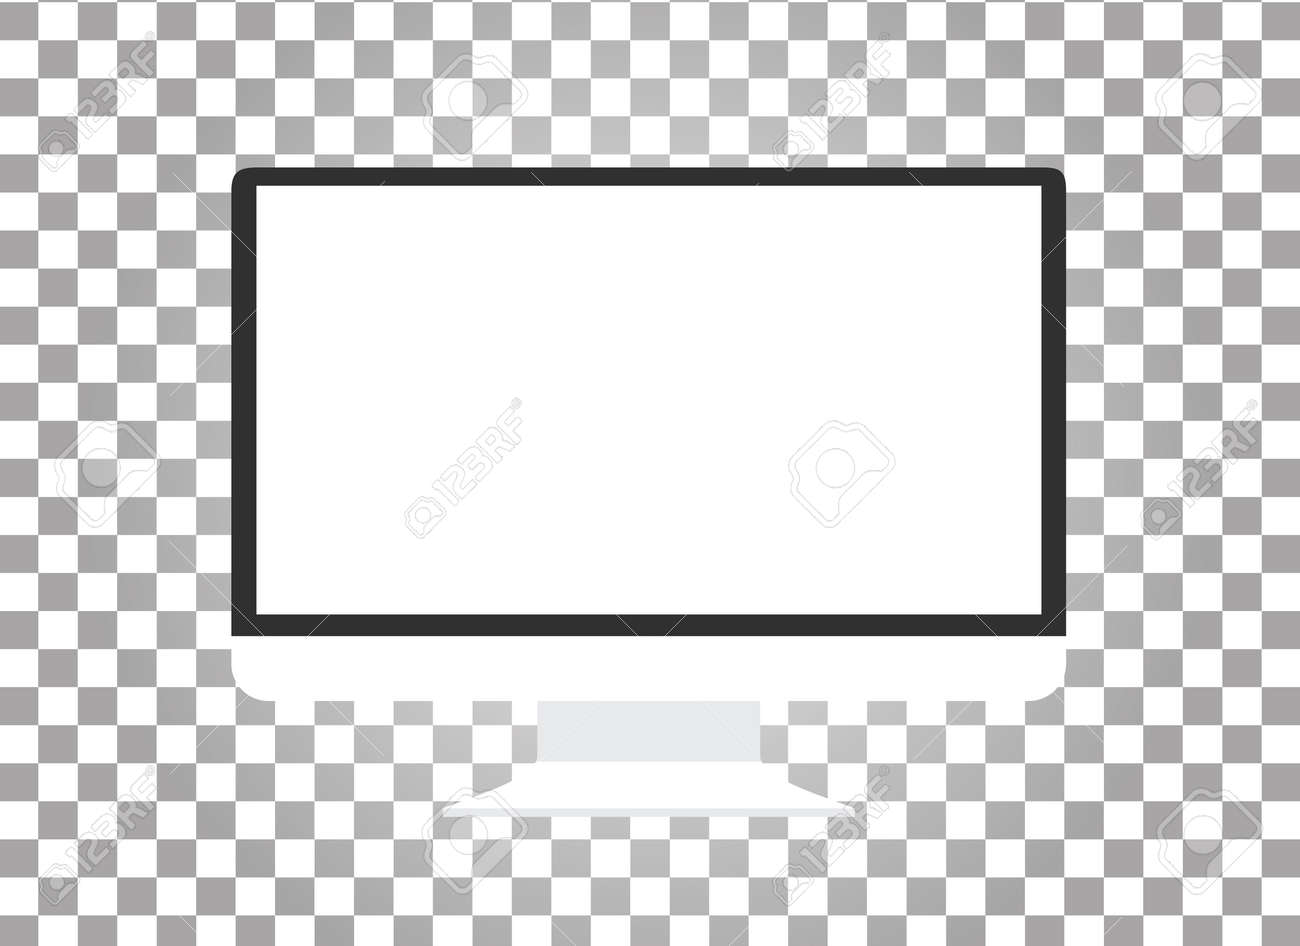 Computer monitor isolated. Computer monitor display. Computer display isolated. Black screen. lcd tv monitor isolated. Icon of monitor. Computer monitor icon. Flat monitor. Vector computer monitor - 51809964